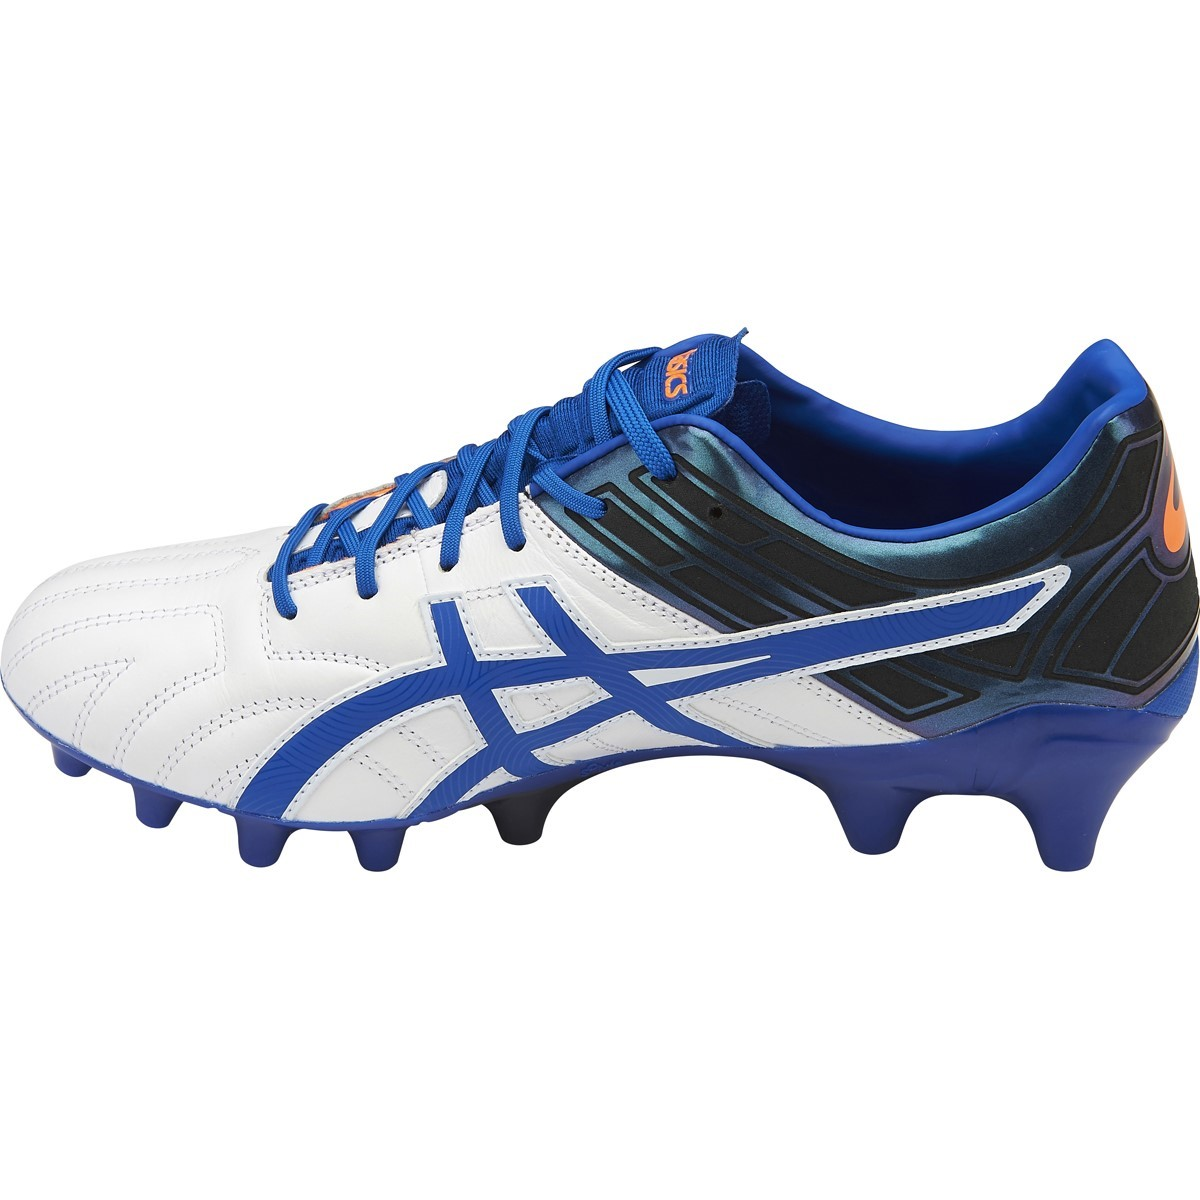 cebf1d4685681 Asics Gel Lethal Tigreor 10 IT - Mens Football Boots - White Imperial Prism